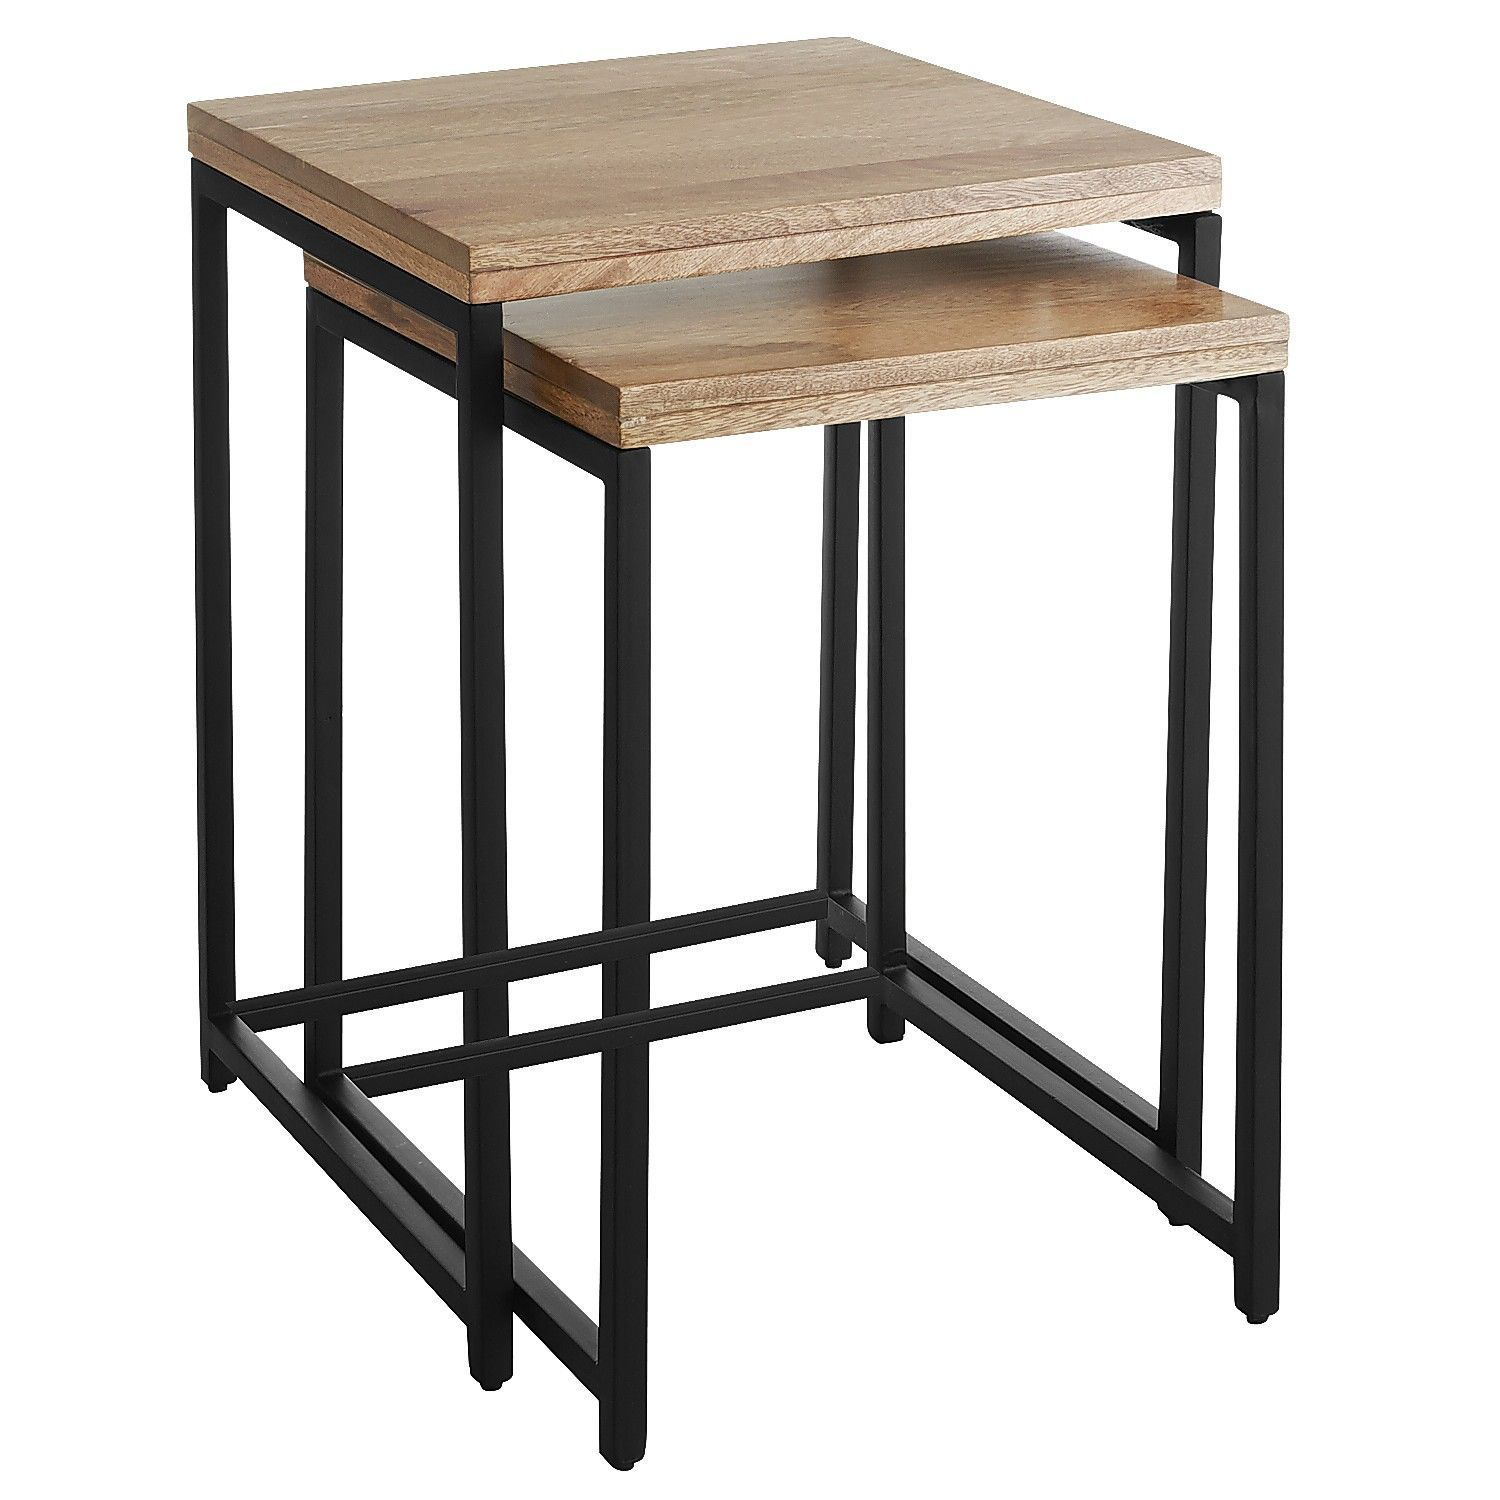 takat nesting tables pier imports home kenzie accent table black side lamp foyer ideas round dining set for nautical bar lights italian marble coffee barn door kirklands wall